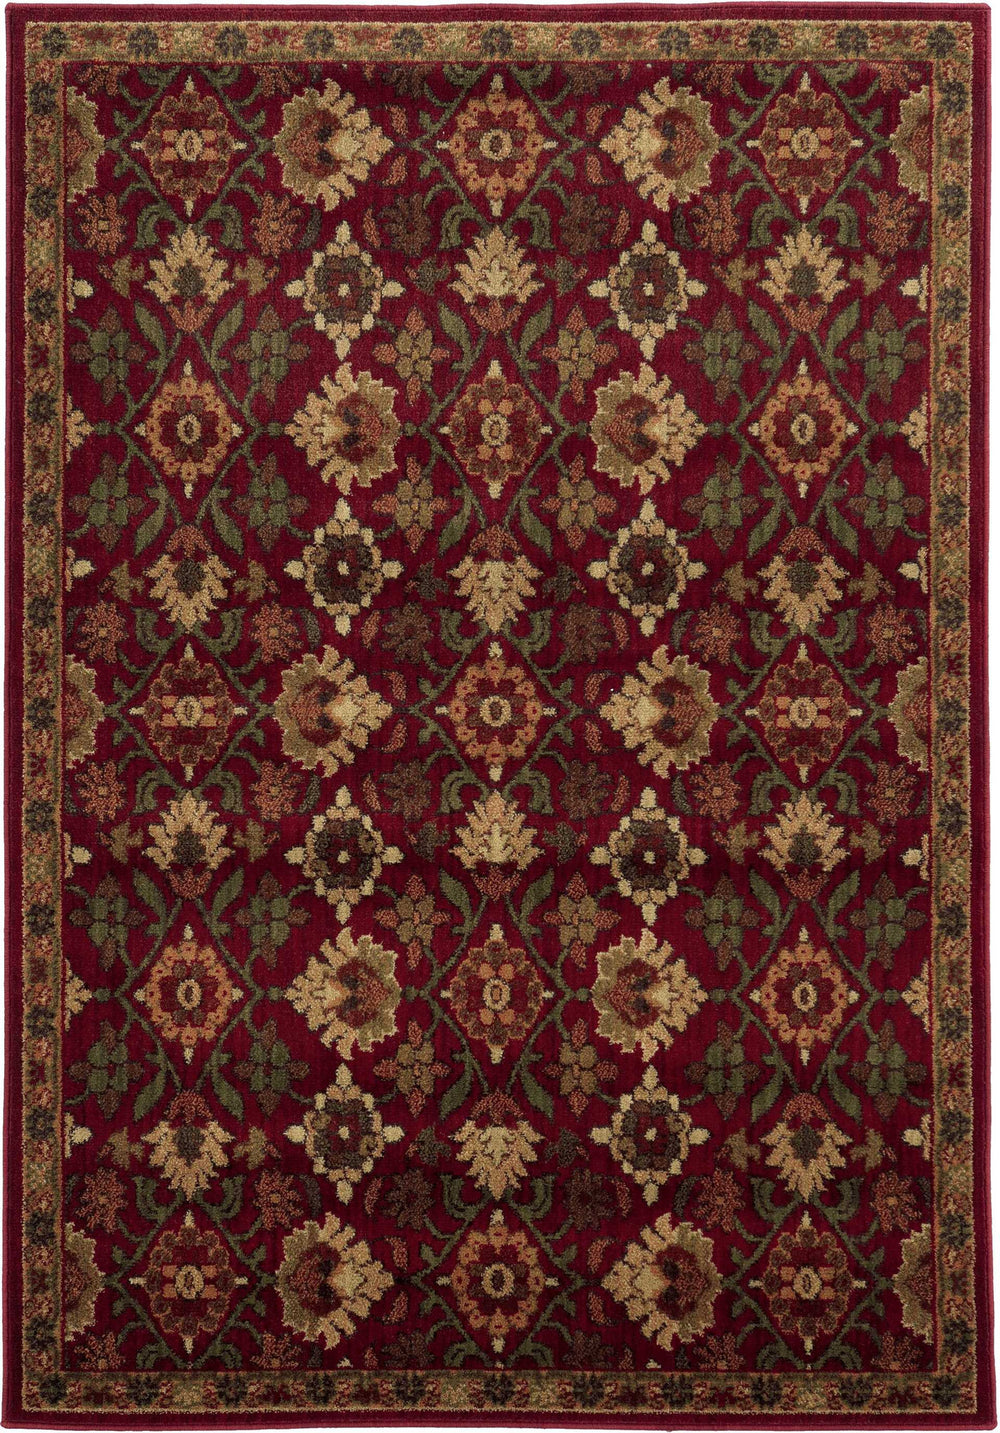 Oriental Weavers Aston 536 Area Rug